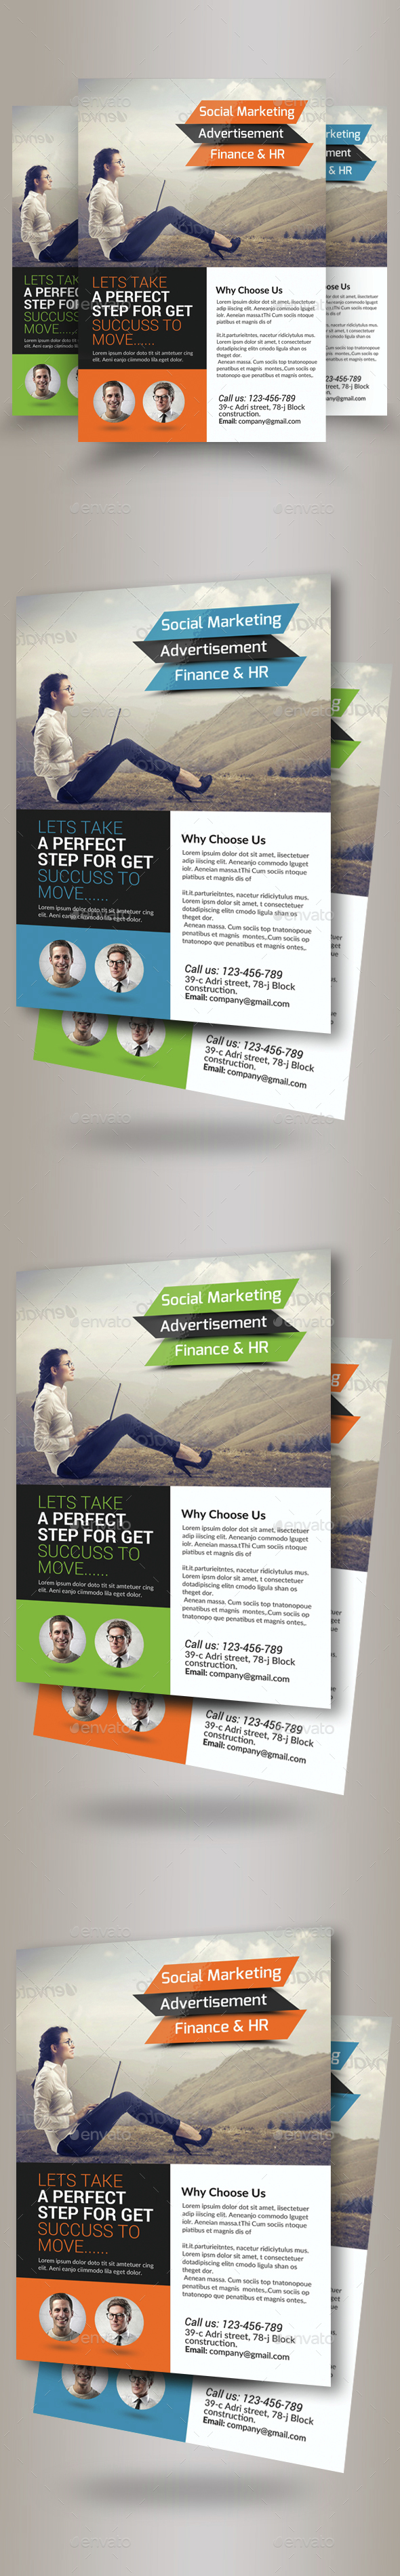 Marketing Consulting Business Flyer  - Corporate Flyers